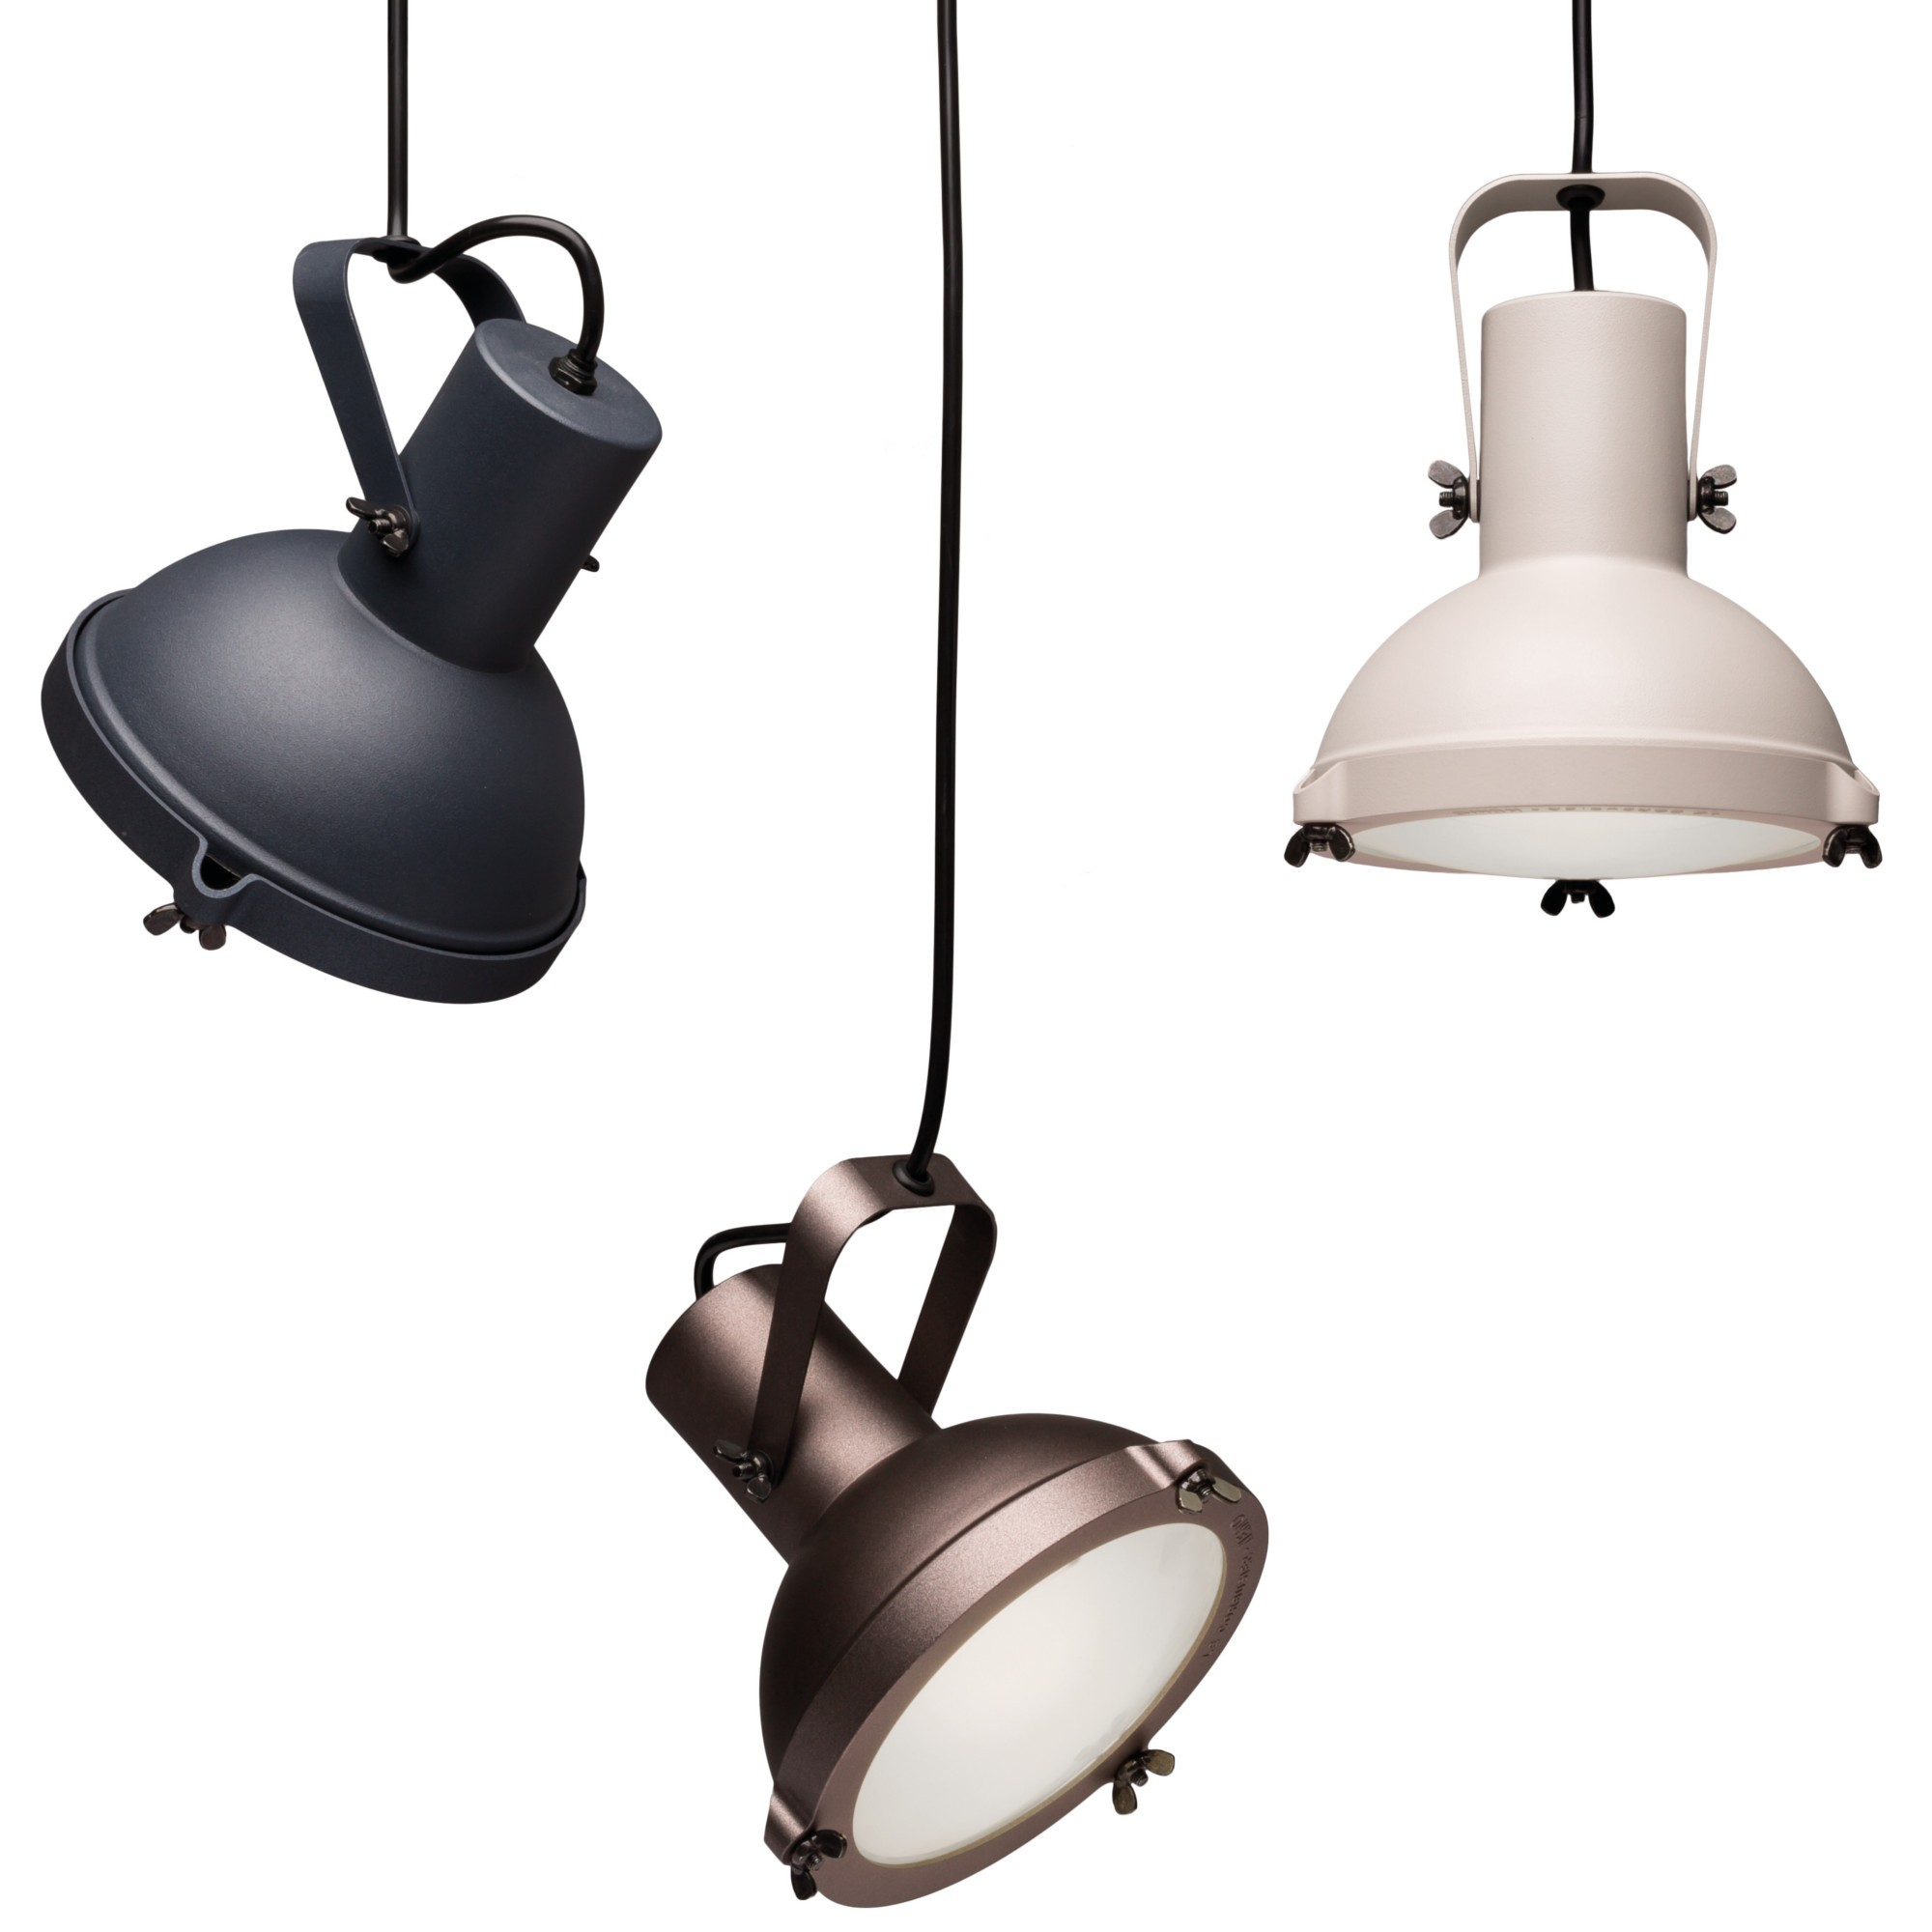 PROJECTEUR SUSPENSION LAMP, by NEMO